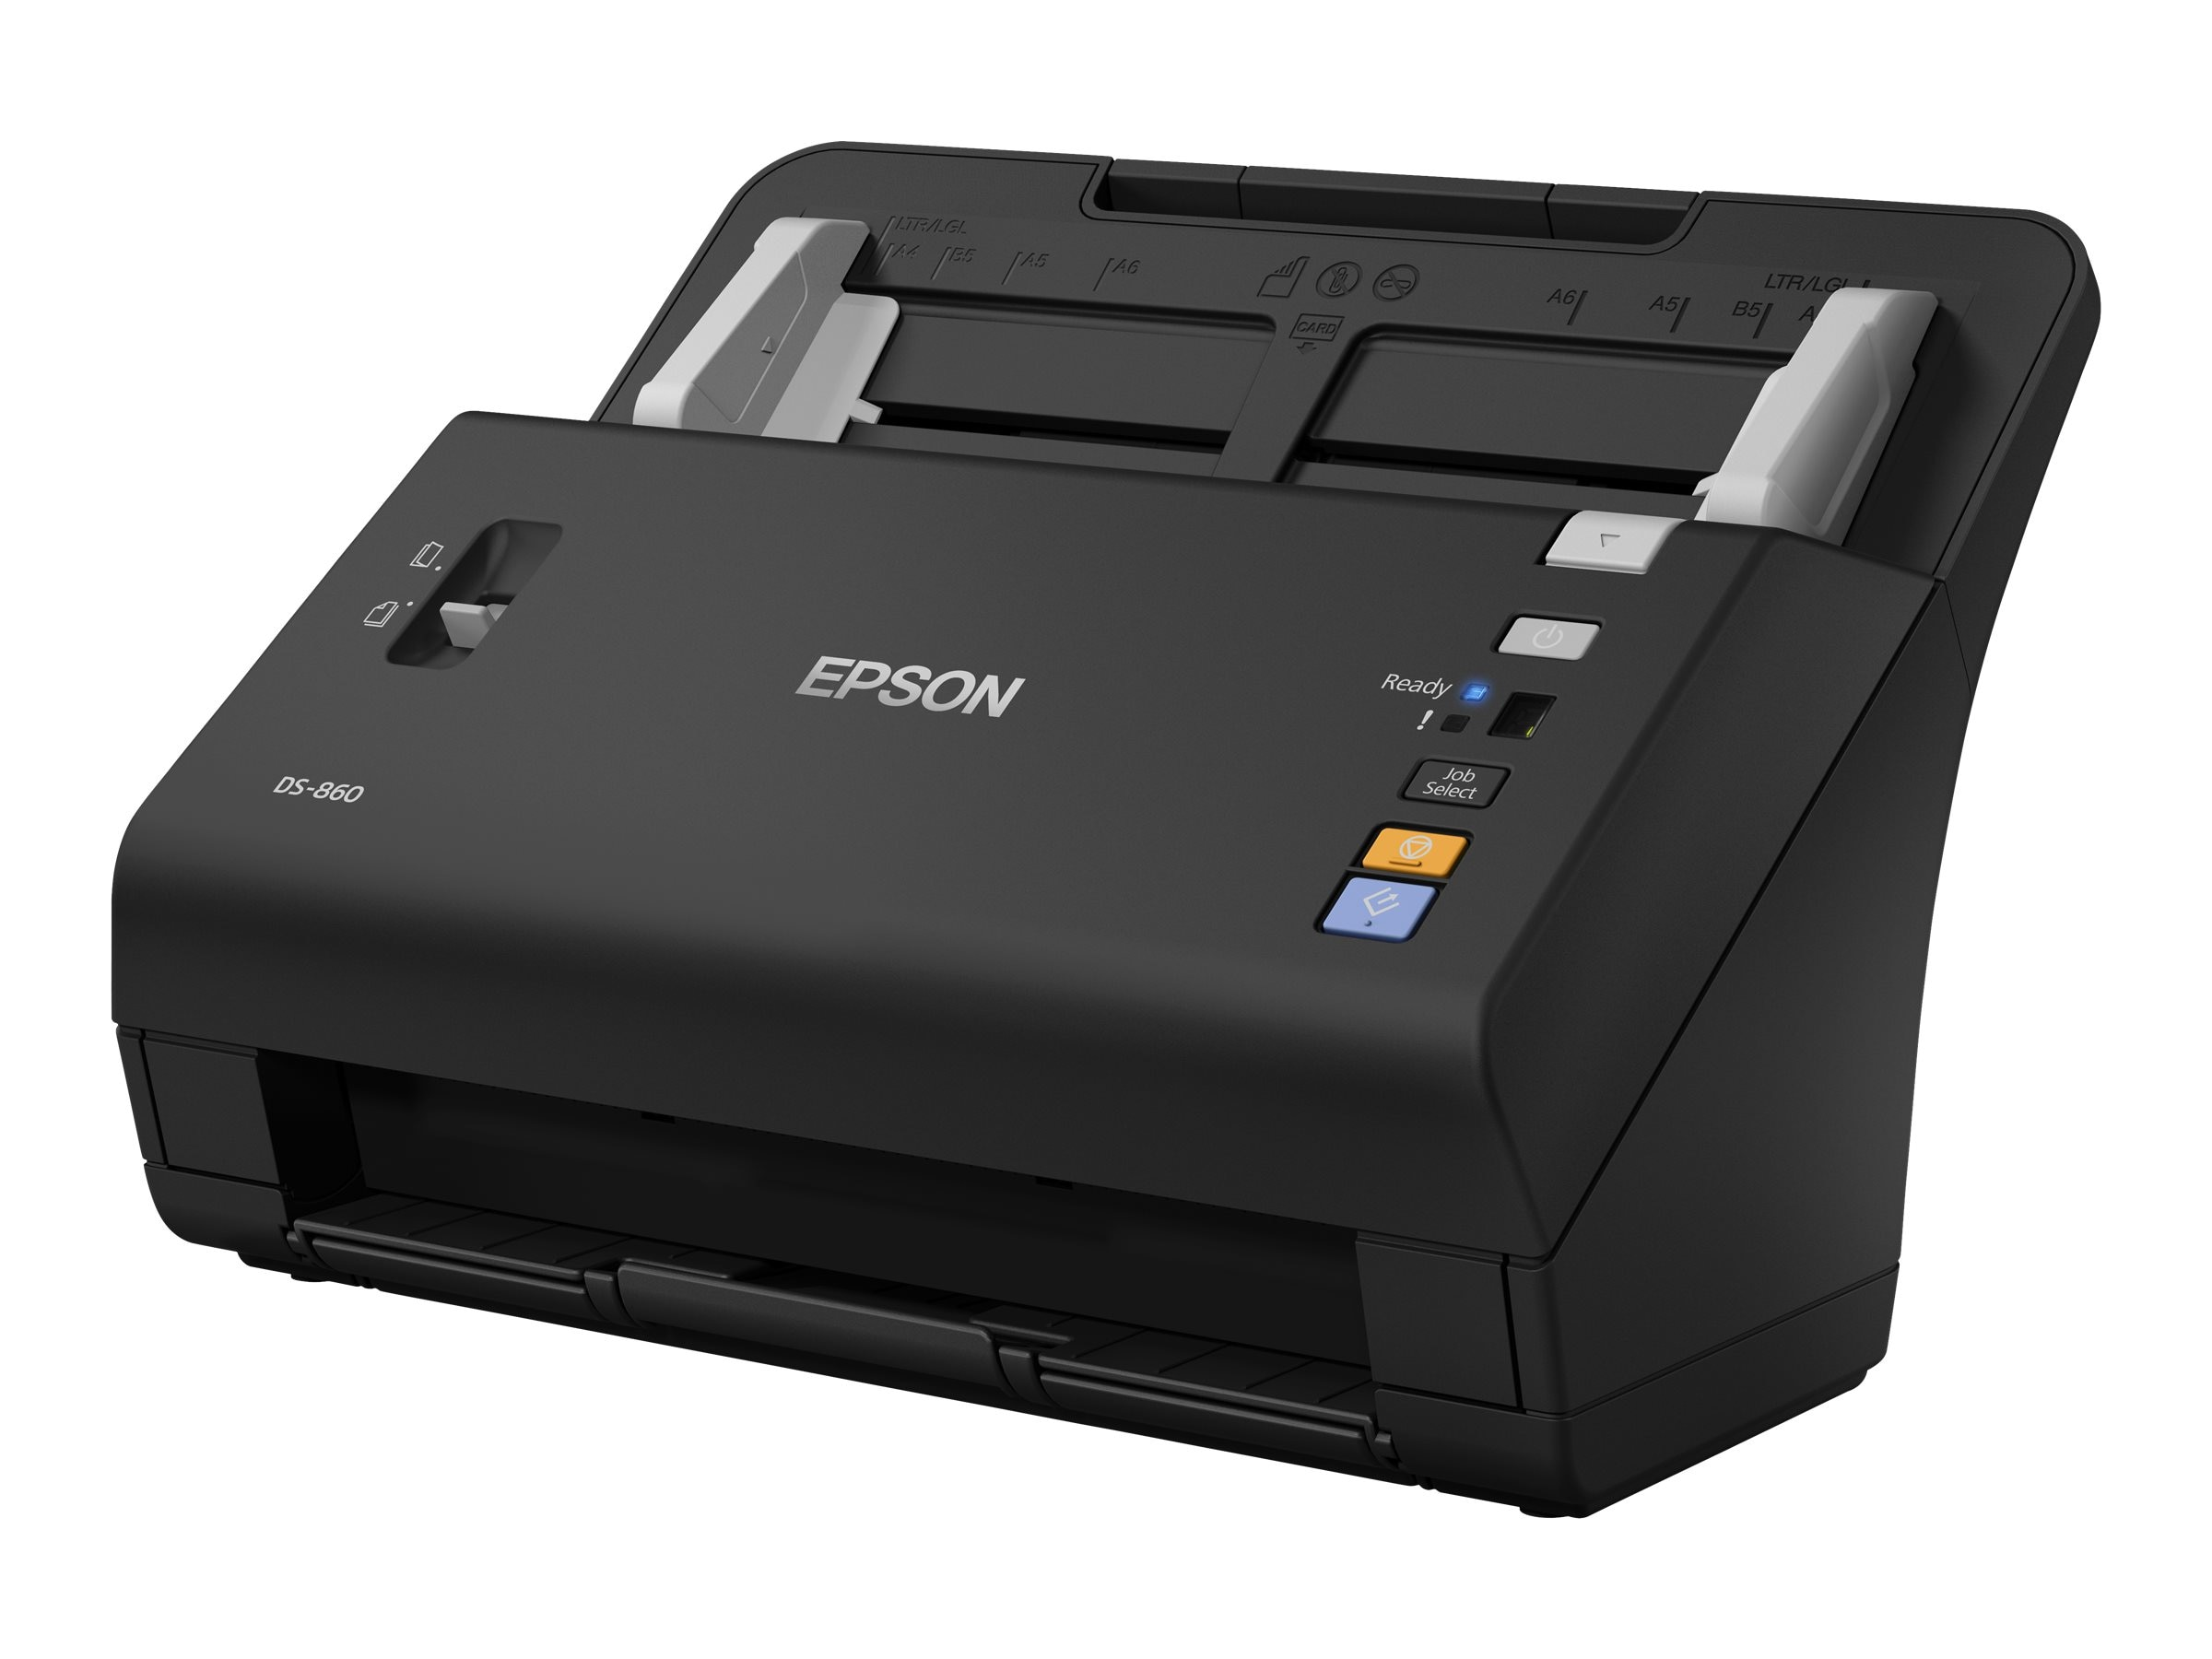 Epson WorkForce DS-860 65ppm 80-page ADF Document Scanner - $1099 less instant rebate of $300.00, B11B222201, 16959494, Scanners